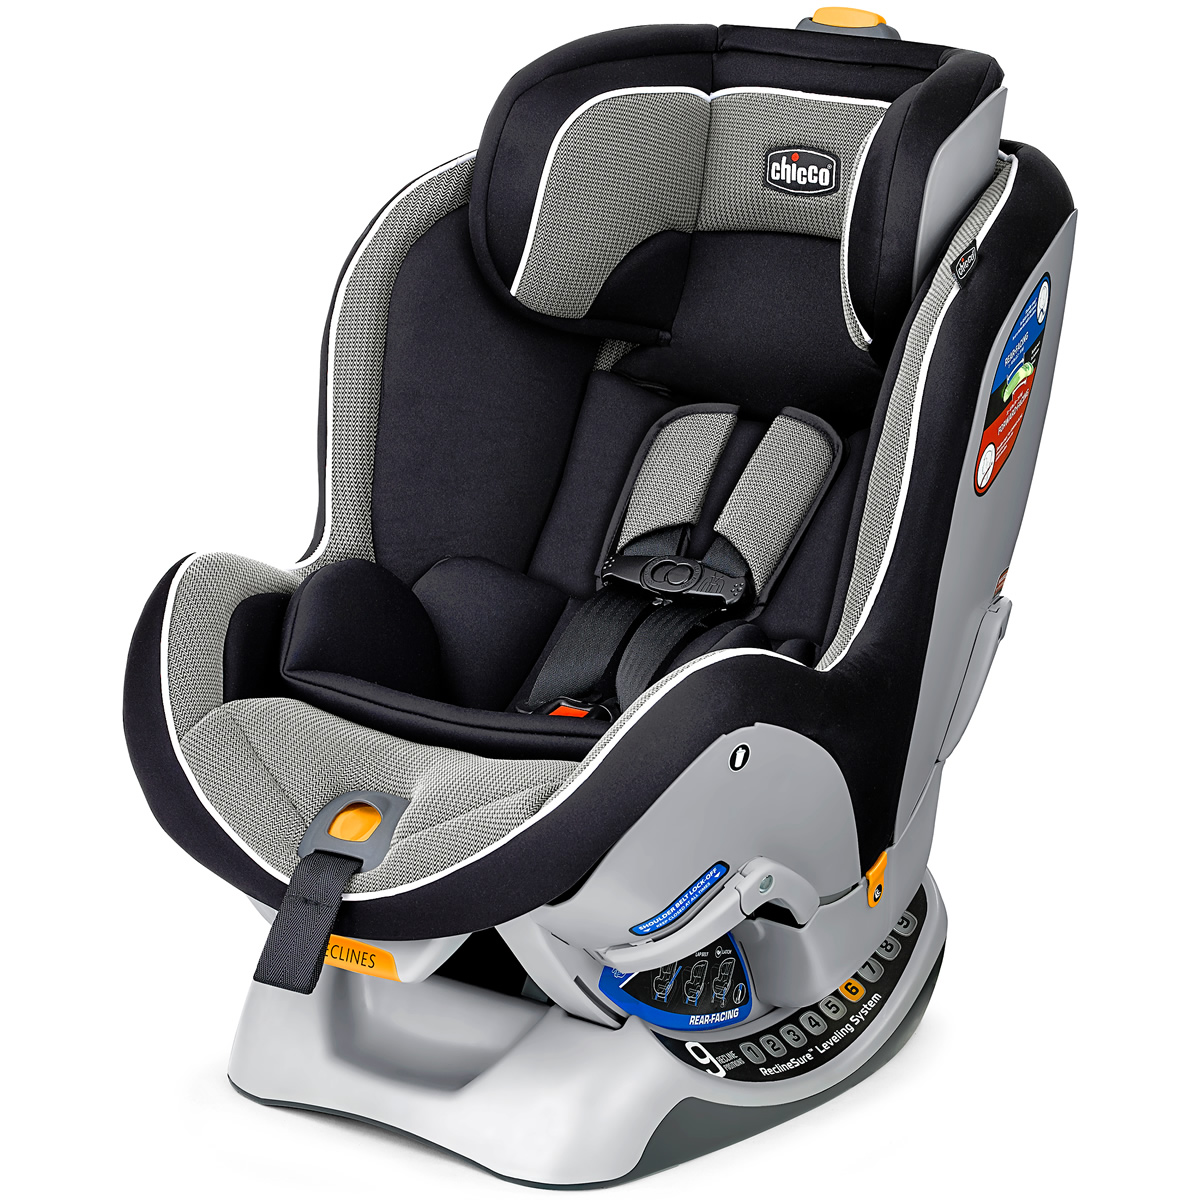 Car Seat Chair Chicco Nextfit Convertible Car Seat Intrigue